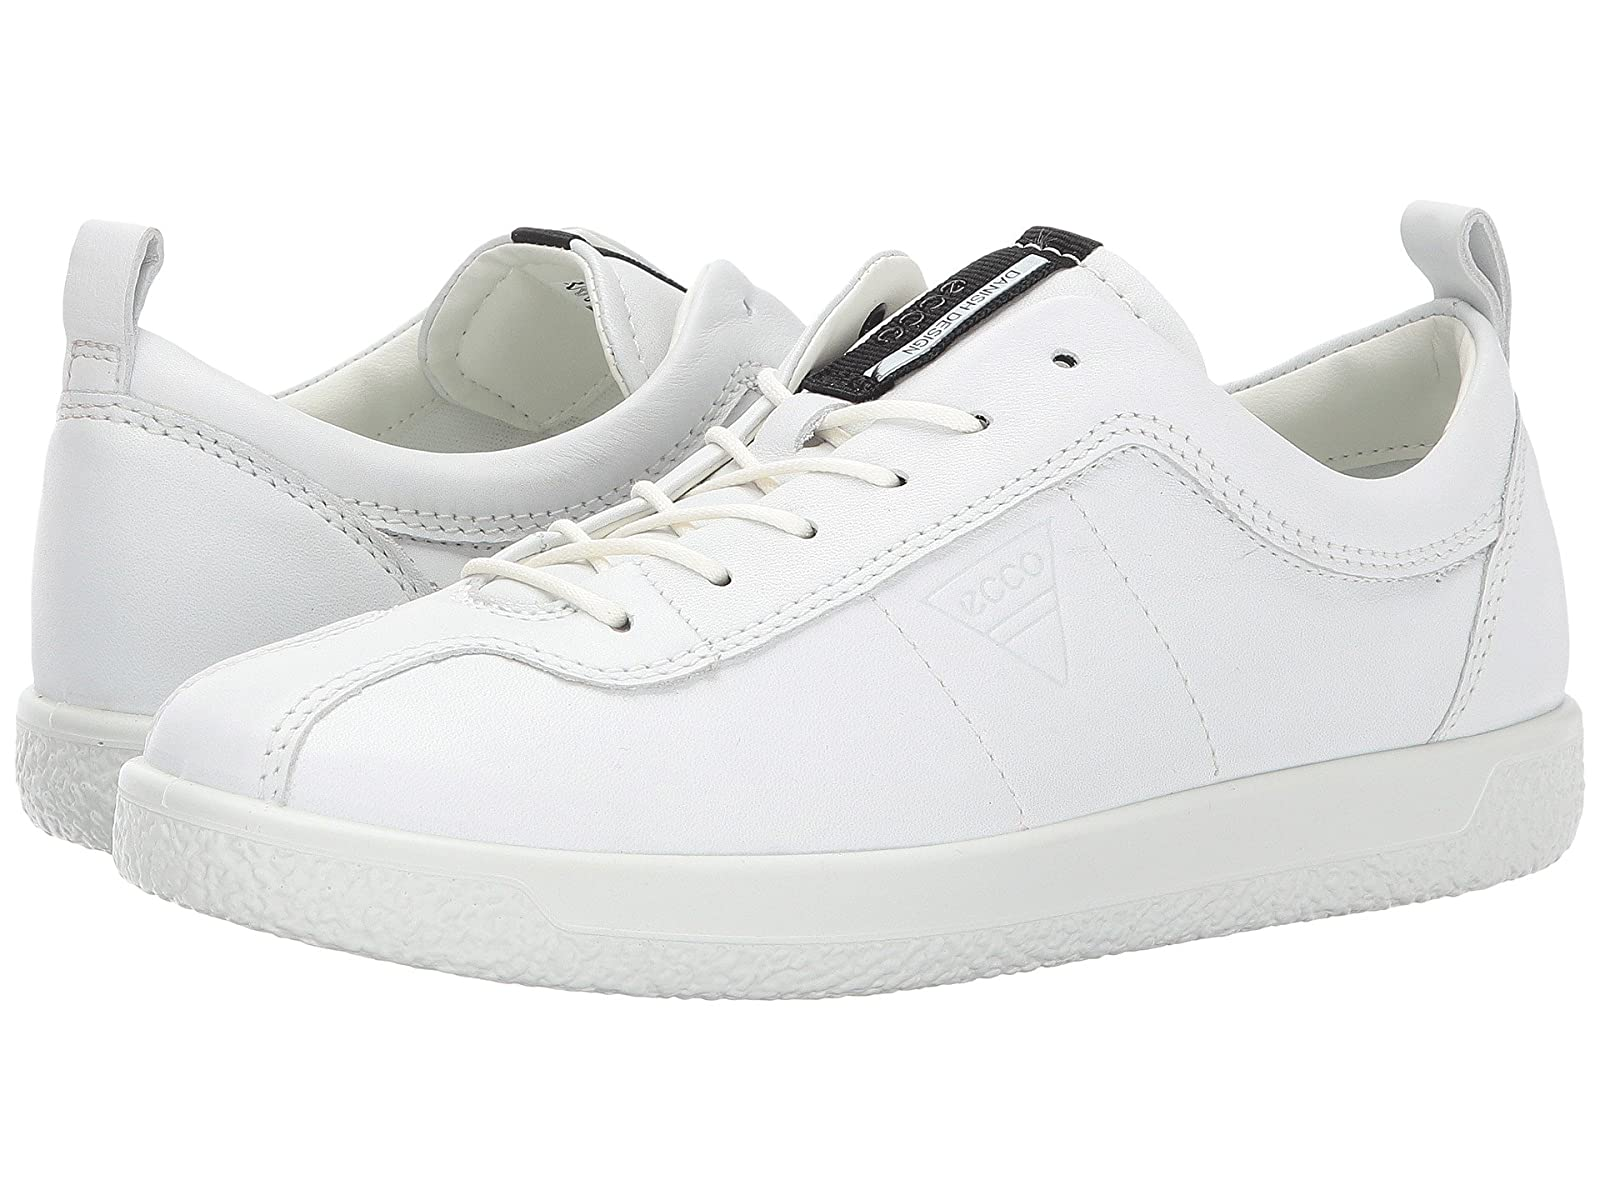 ECCO Soft 1 SneakerCheap and distinctive eye-catching shoes